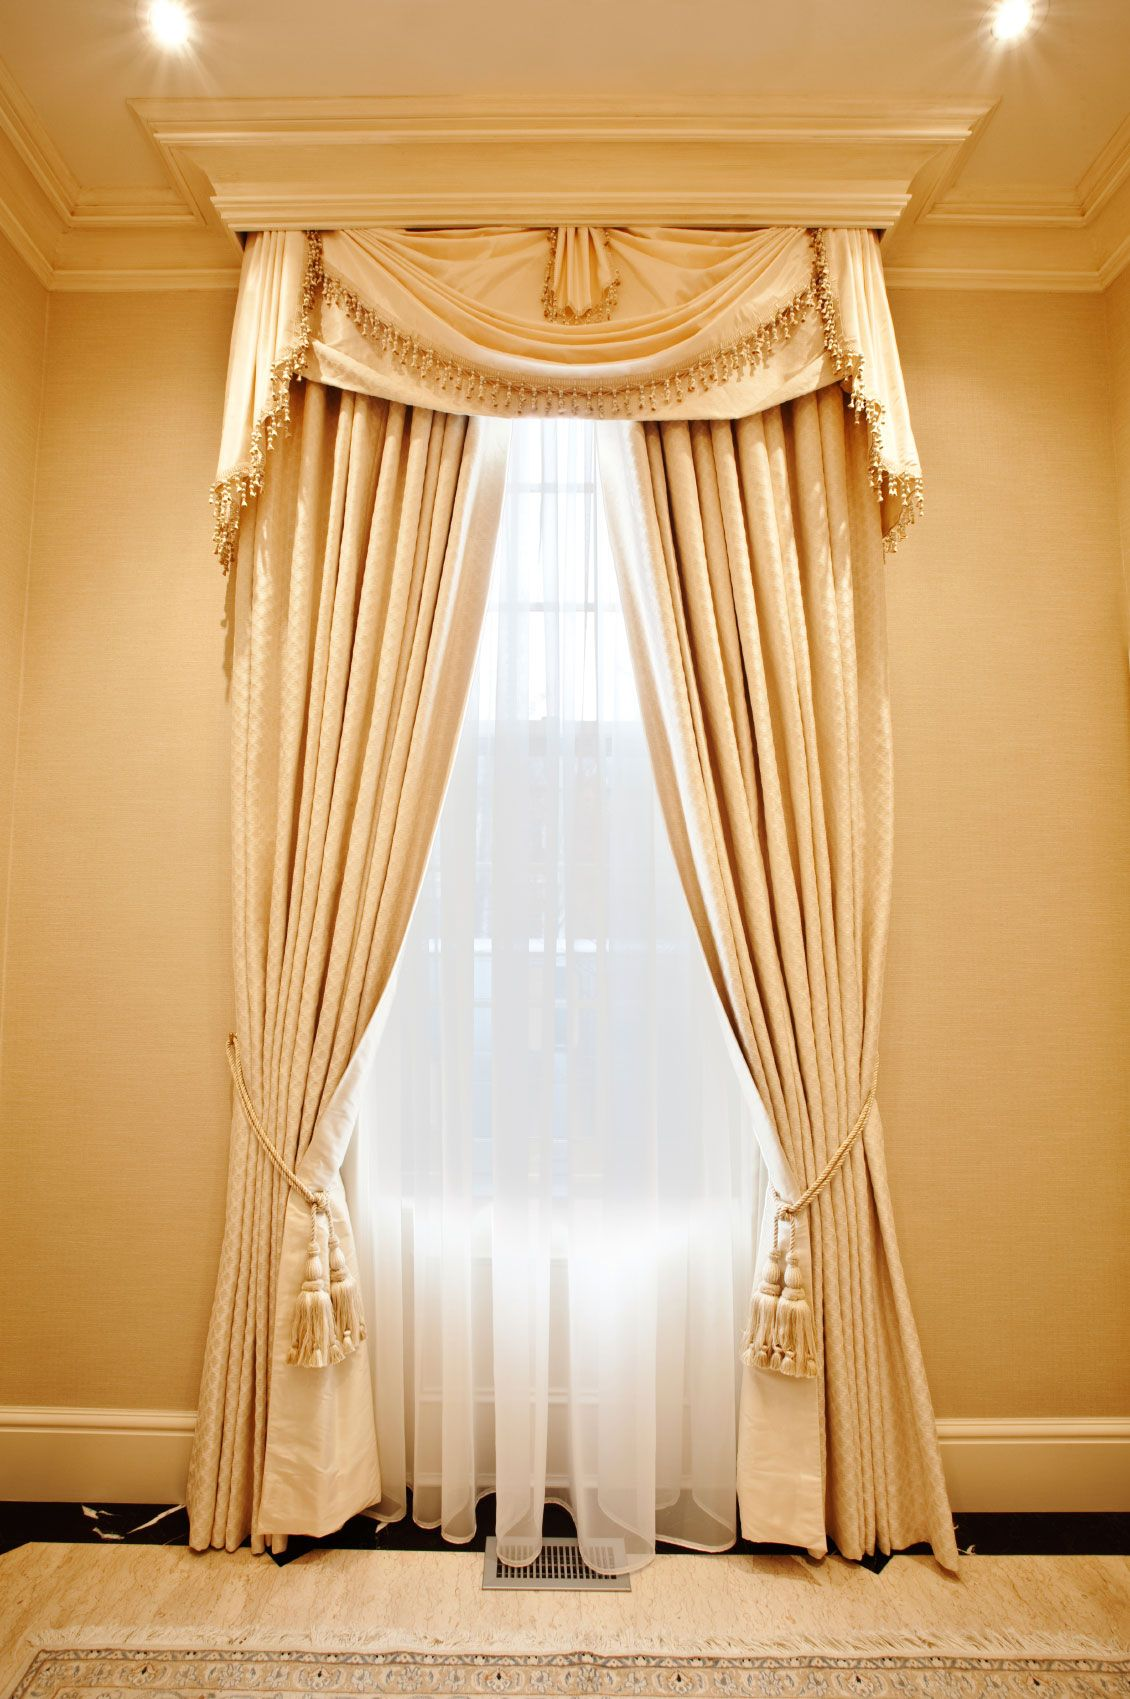 Curtain designs living room - Curtain Design Ideas Curtain Ideas Philippines Bedroom Simple Curtains Design Simple Images Curtain Designs For Living